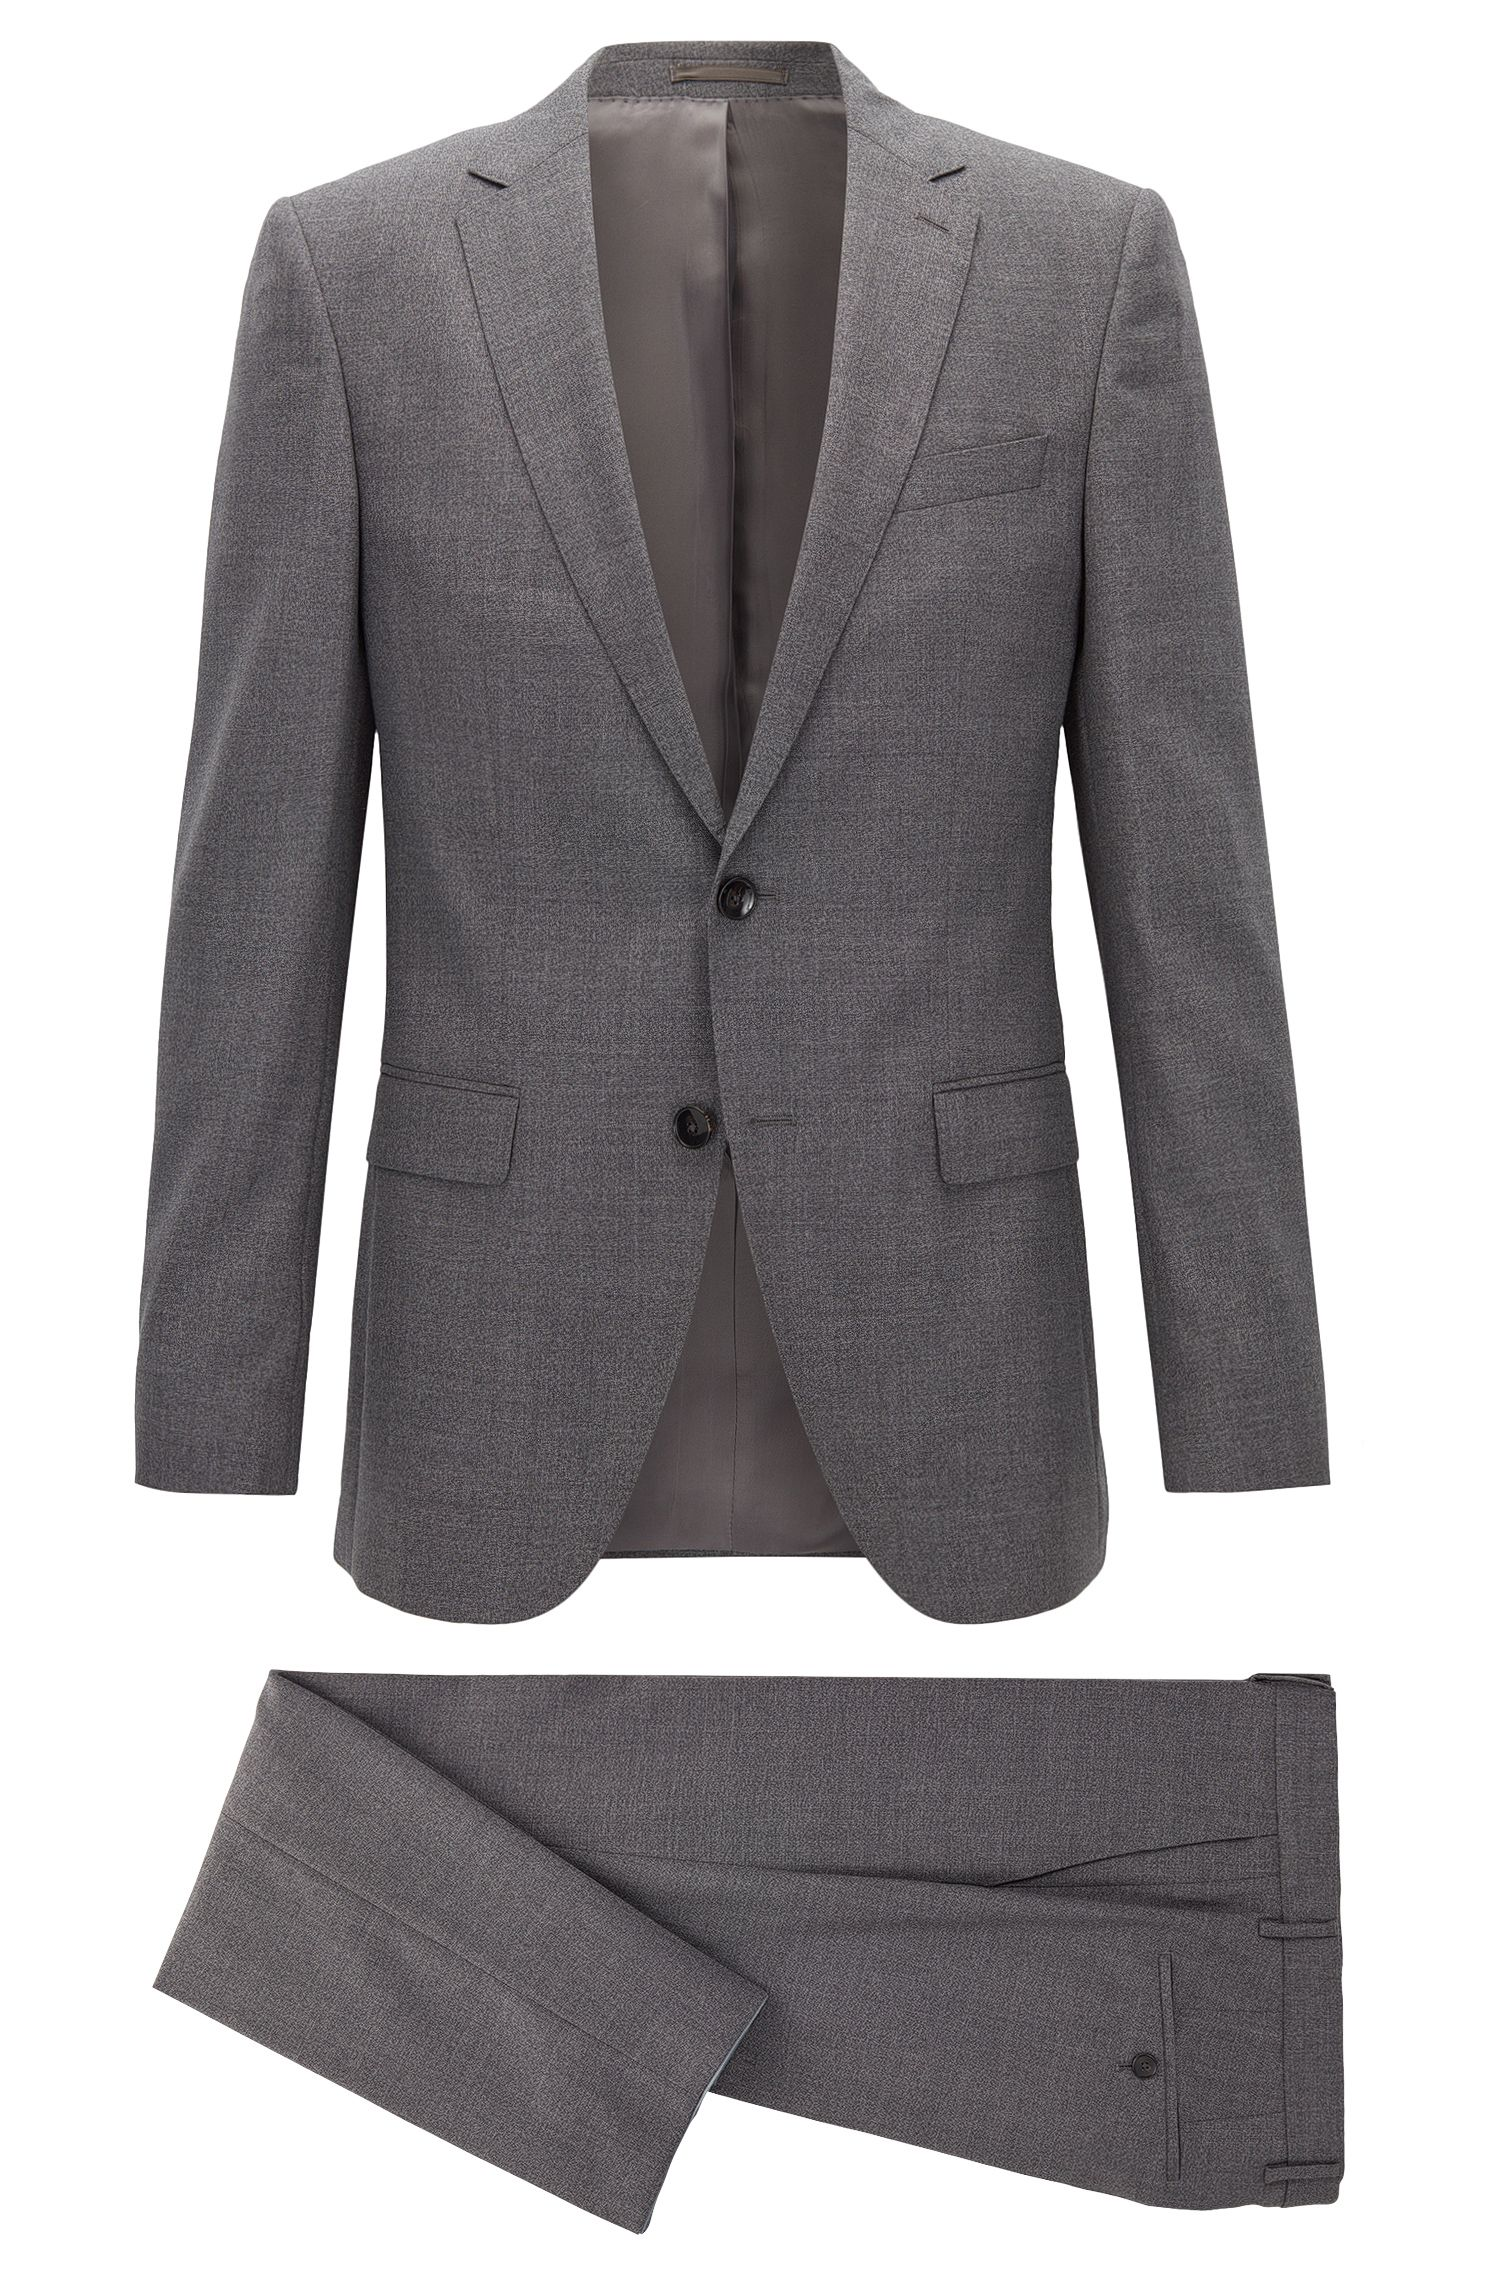 Heathered Virgin Wool Suit, Slim Fit | Novan/Ben